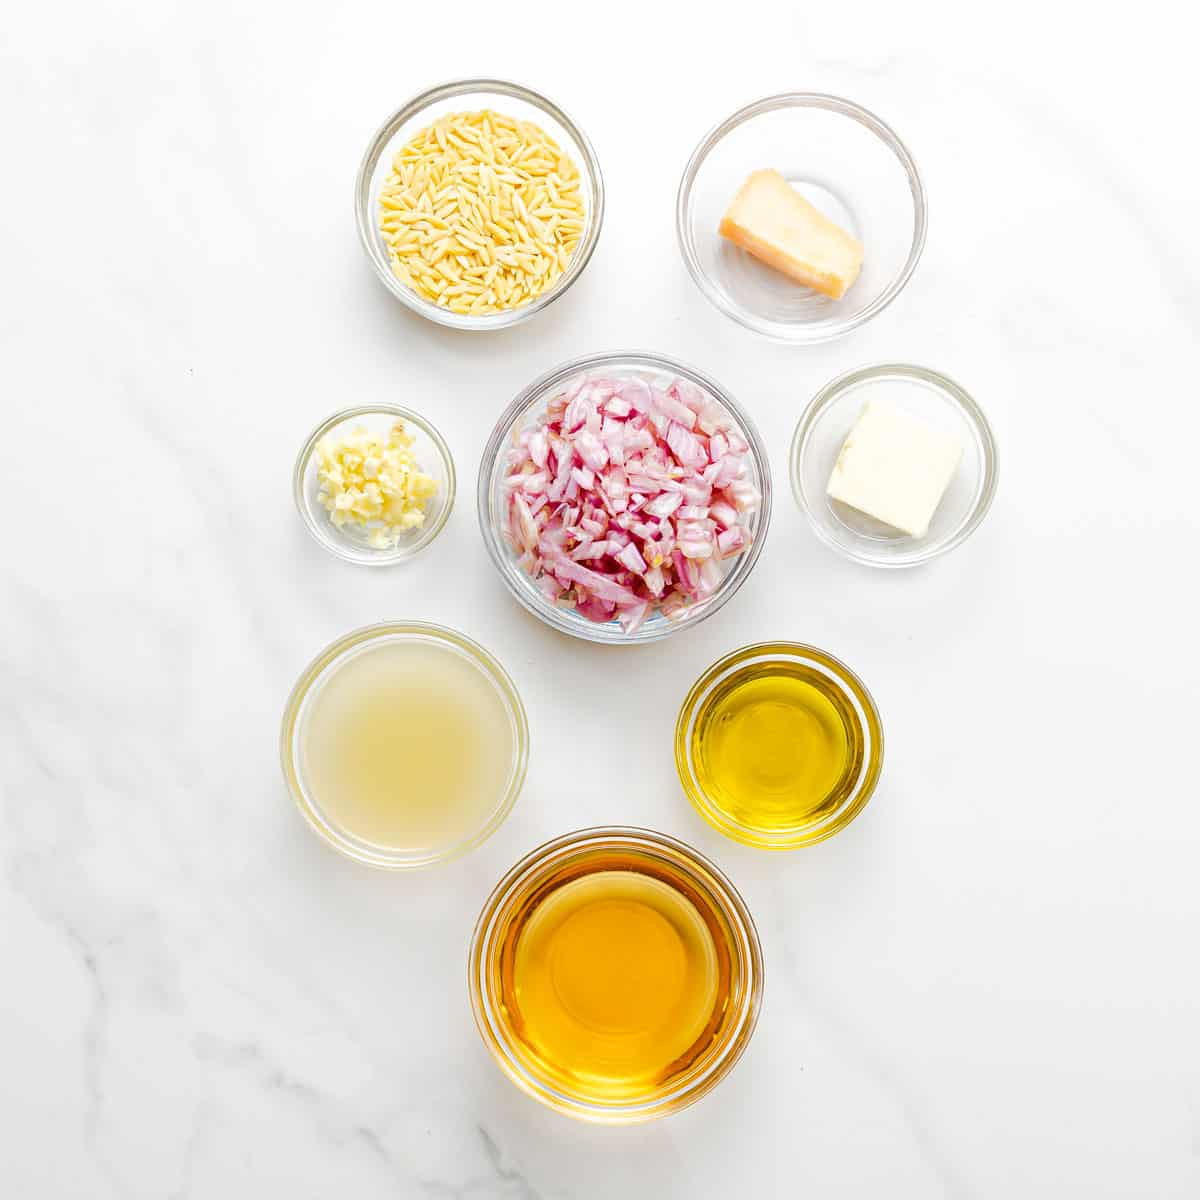 risotto ingredients.